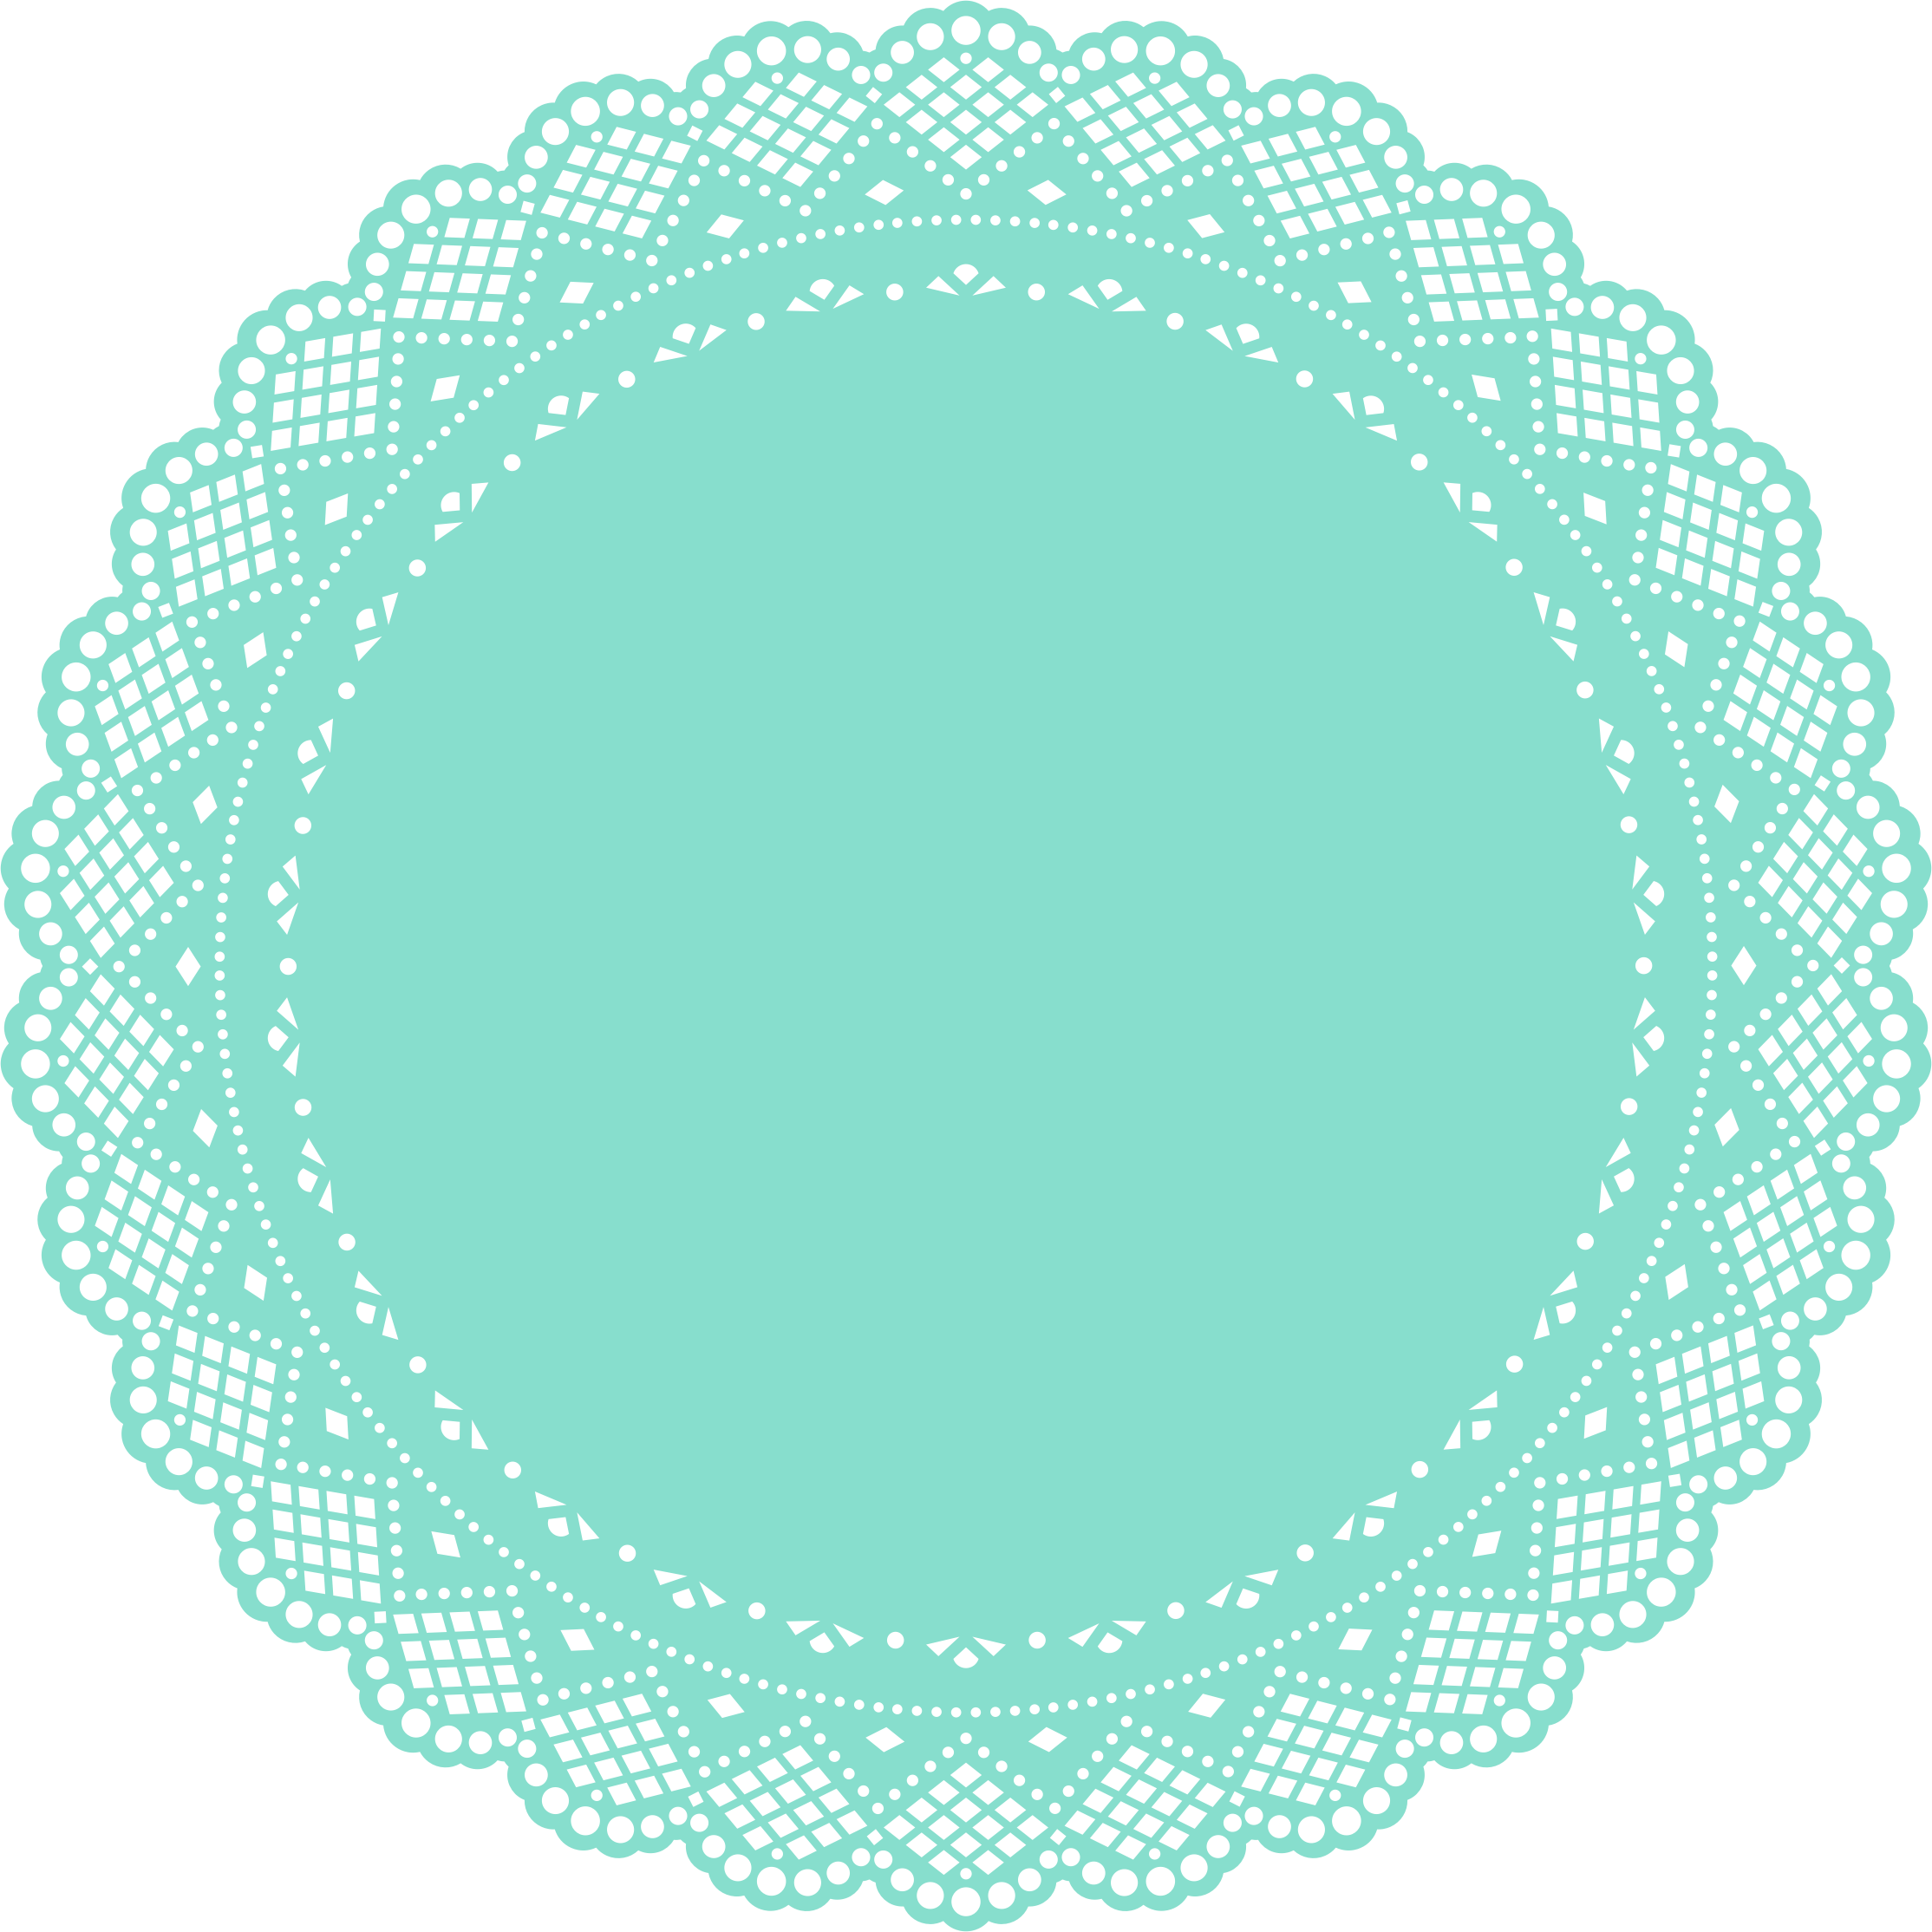 2228x2228 19 Pattern Svg Doily Huge Freebie! Download For Powerpoint